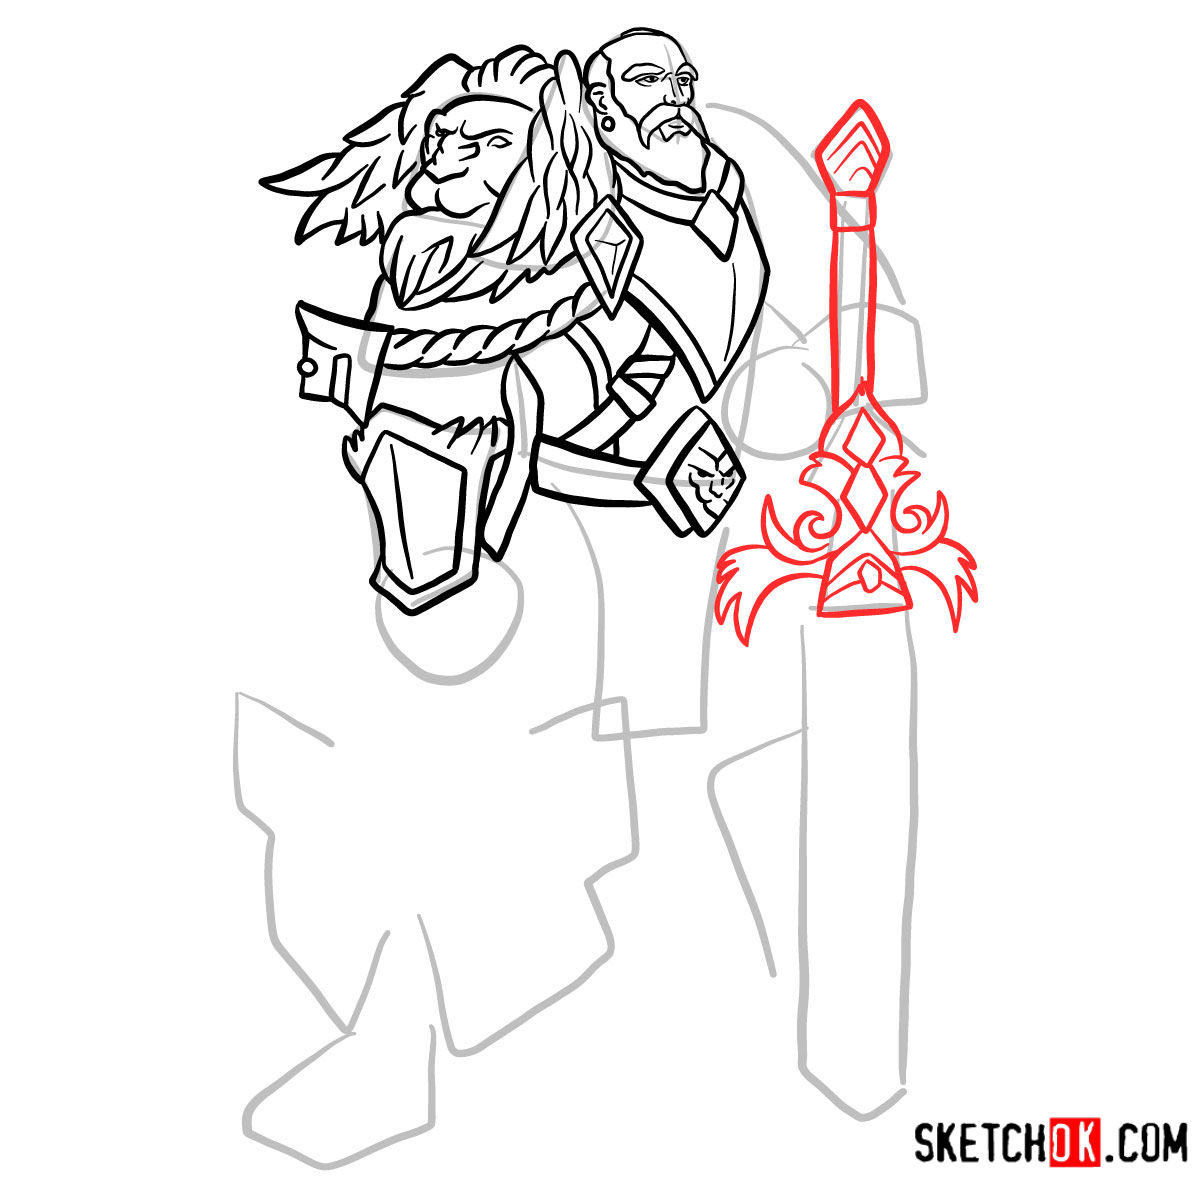 How to draw Lord Anduin Lothar | World of Warcraft - step 10